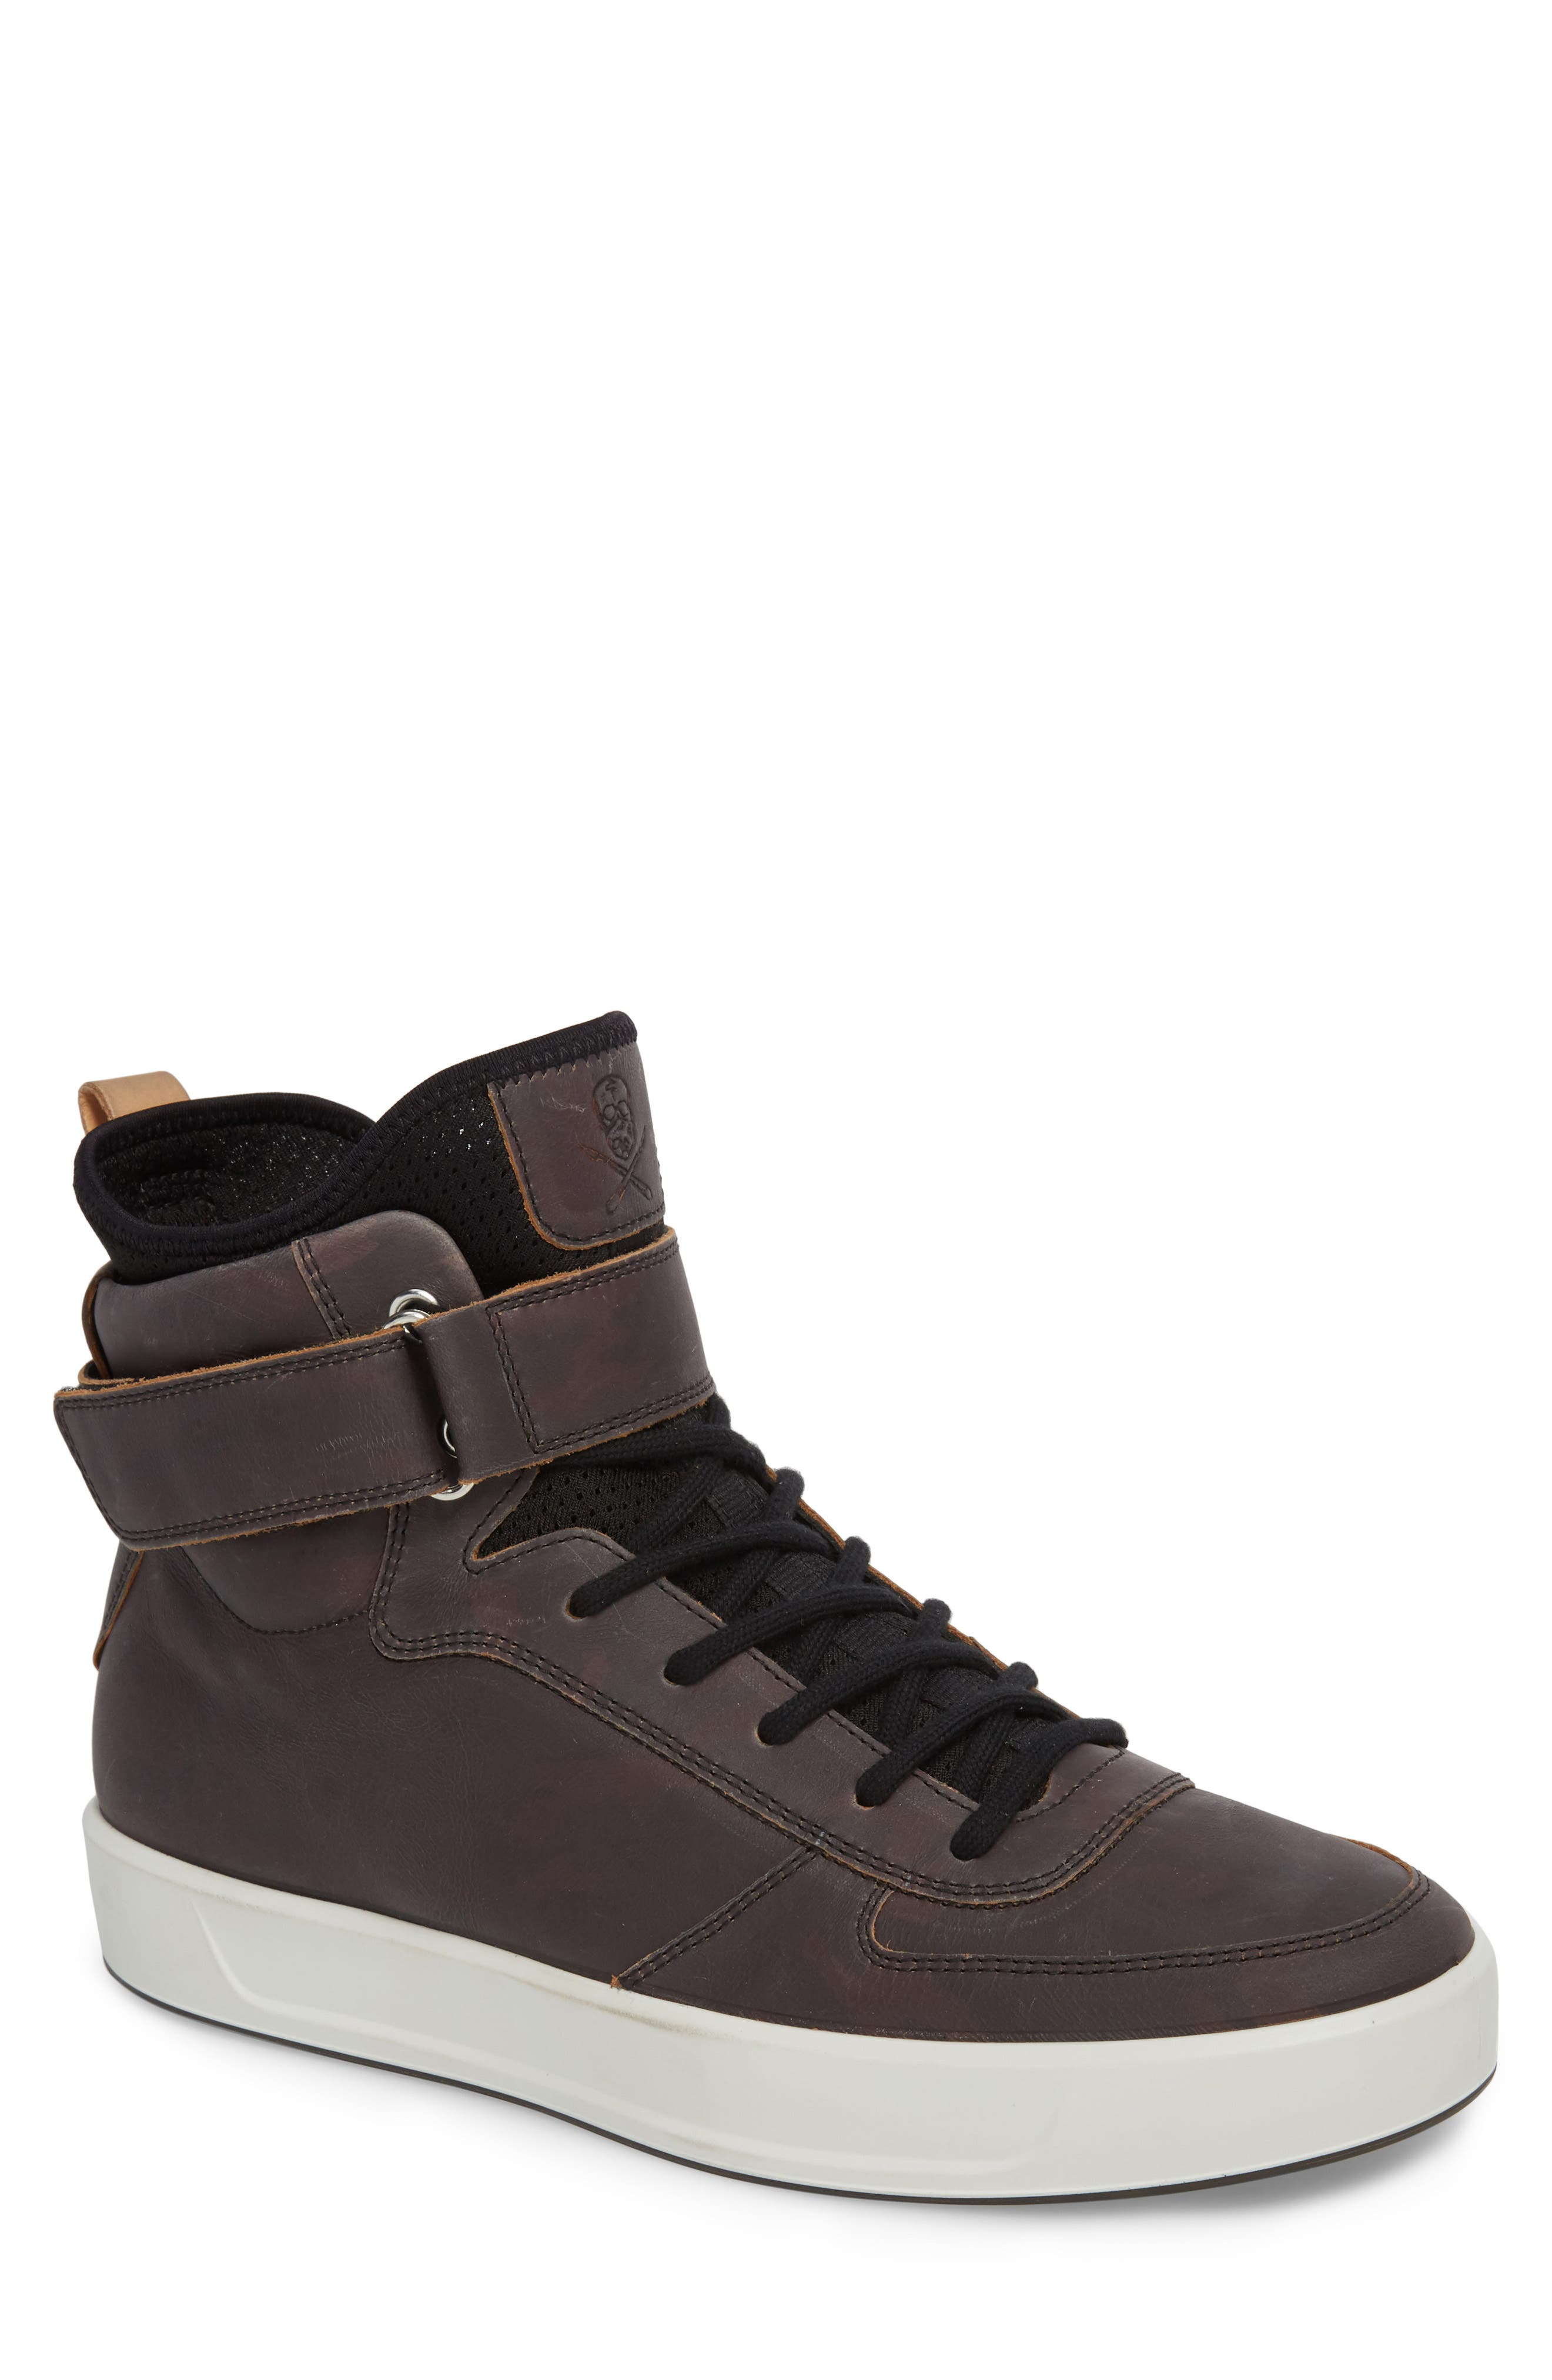 ECCO,                             Soft 8 Color Changing Sneaker Boot,                             Main thumbnail 1, color,                             002